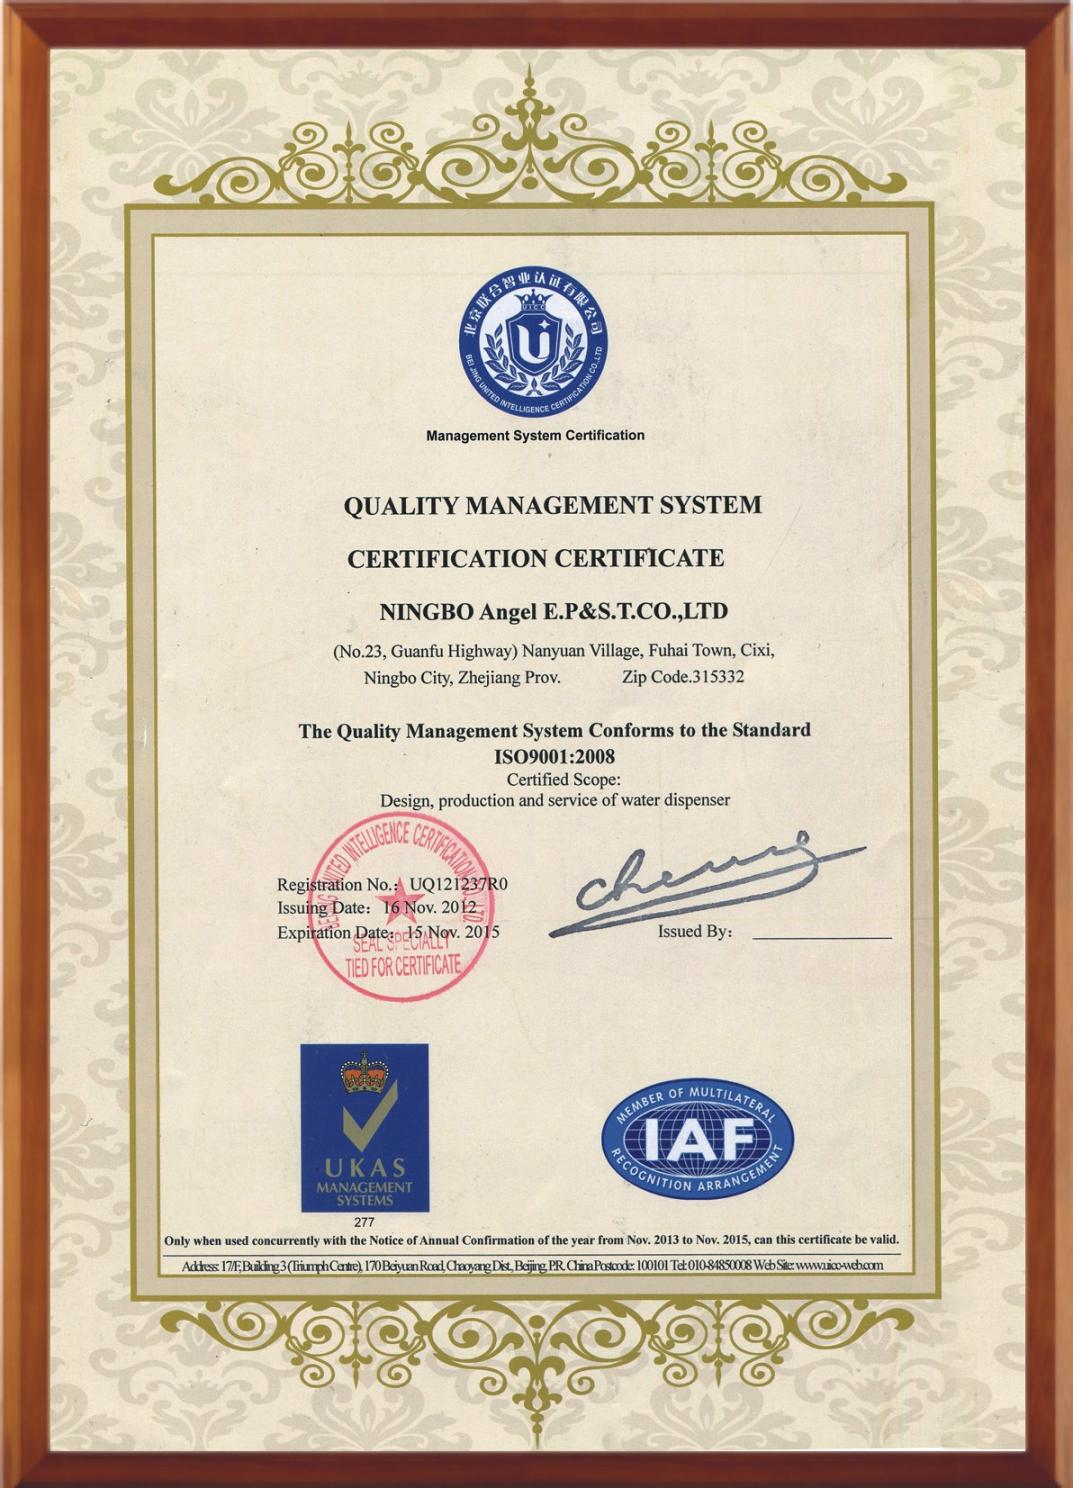 Qualification Management ISO9001:2008 Standard